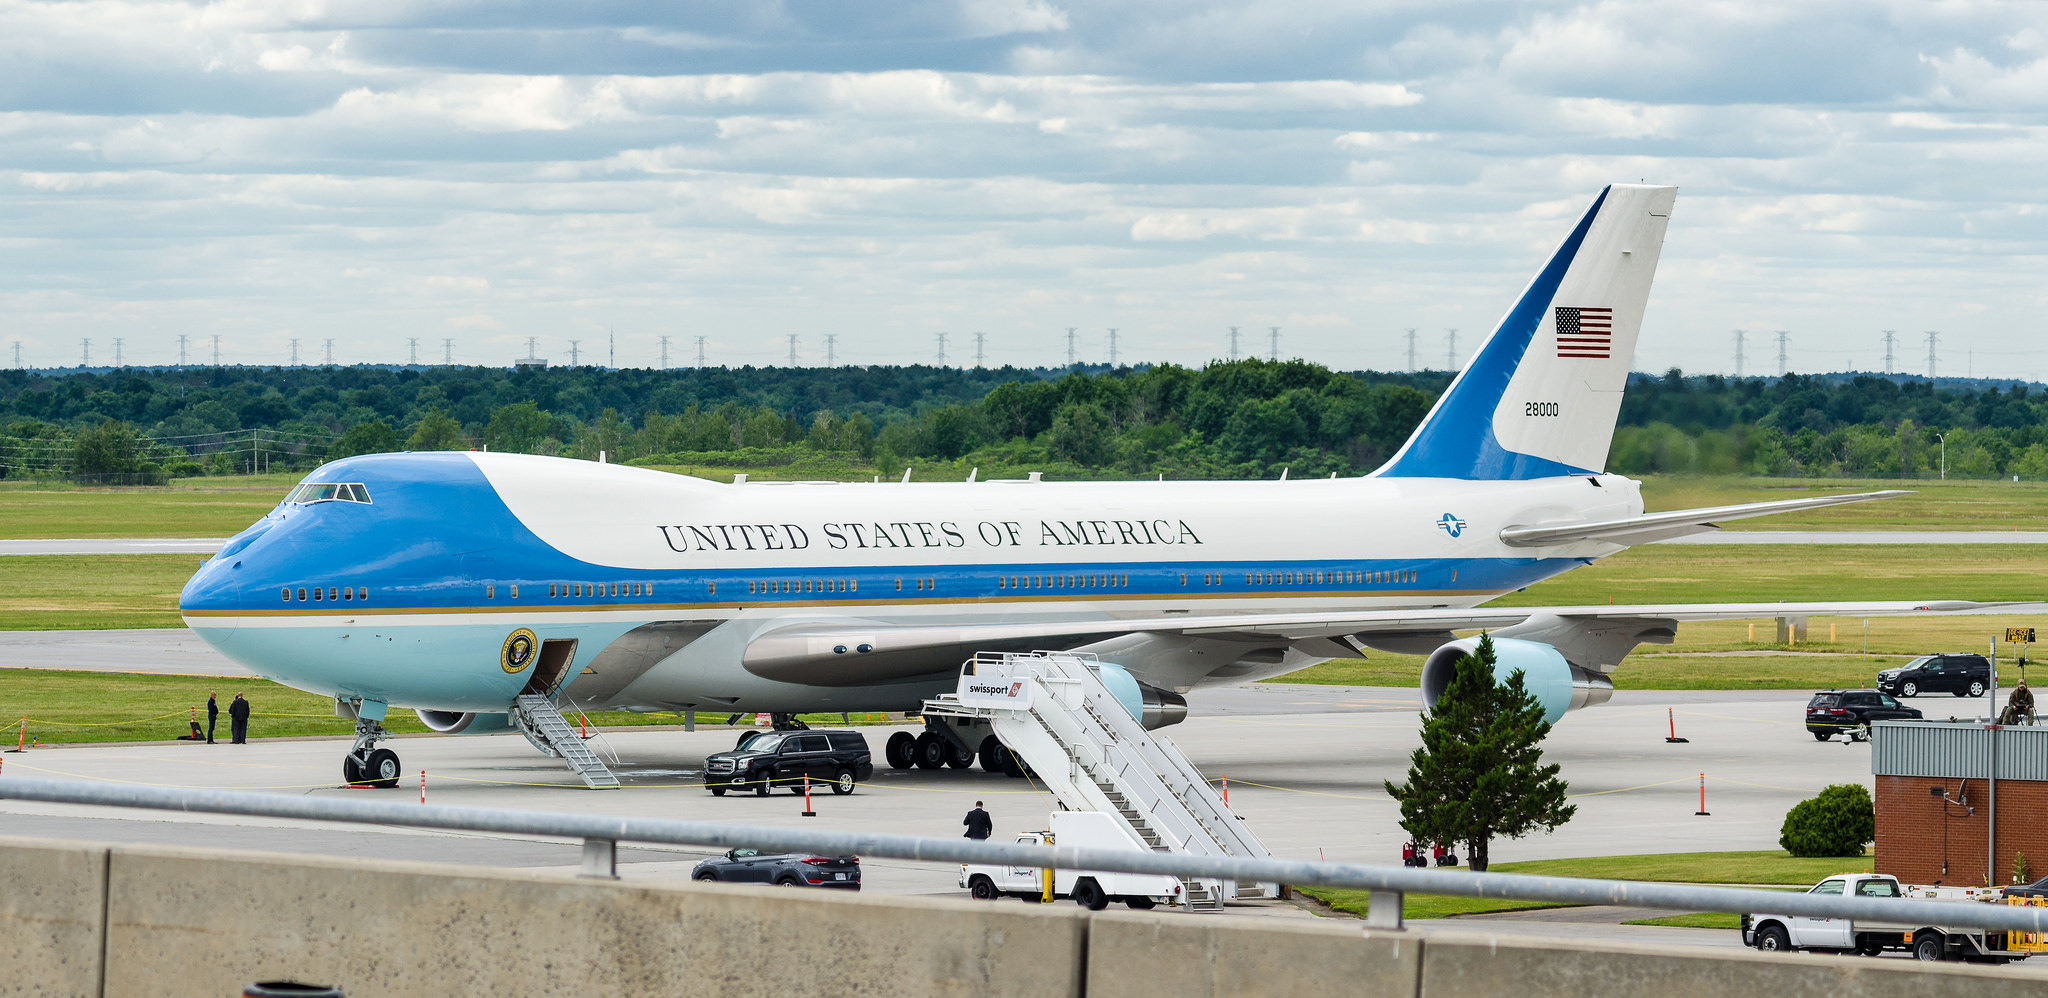 An Air Force One plane parks at the airport. (Photo by Heads Up Aviation via Flickr)